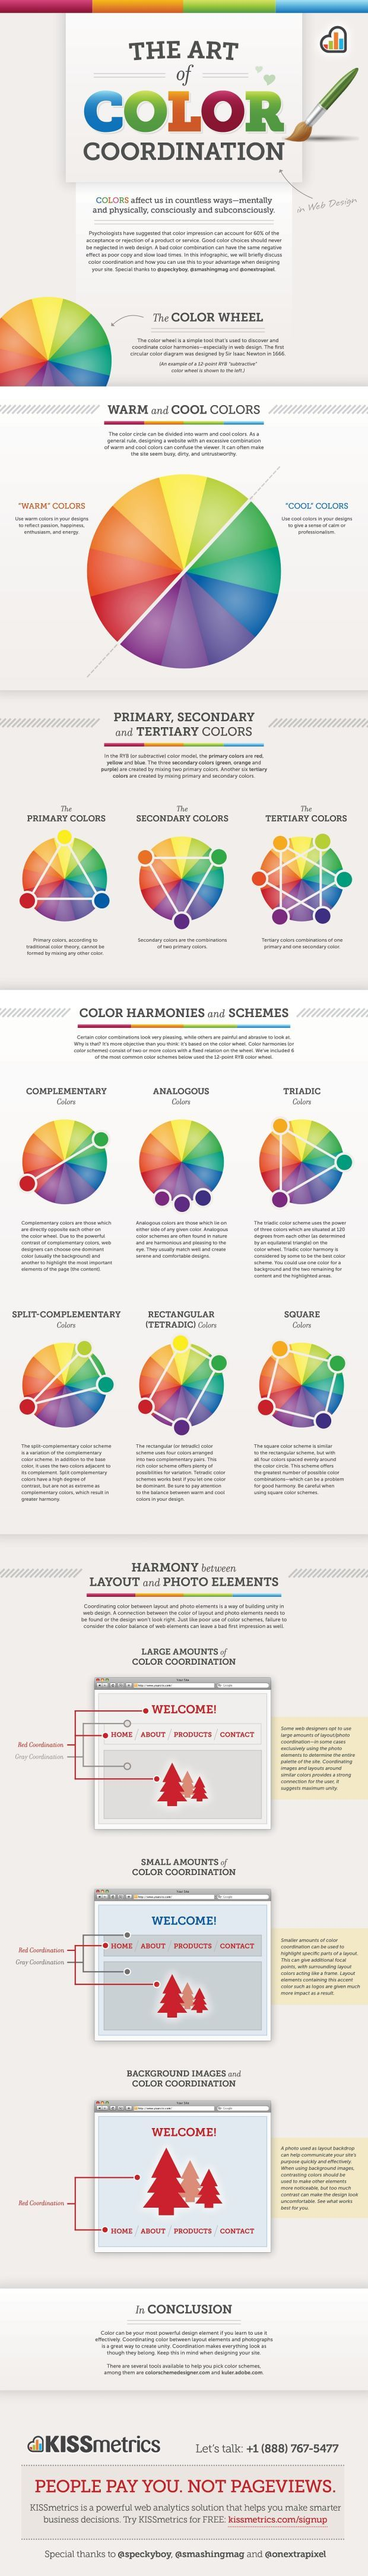 Color theory online games - Color Wheel Art